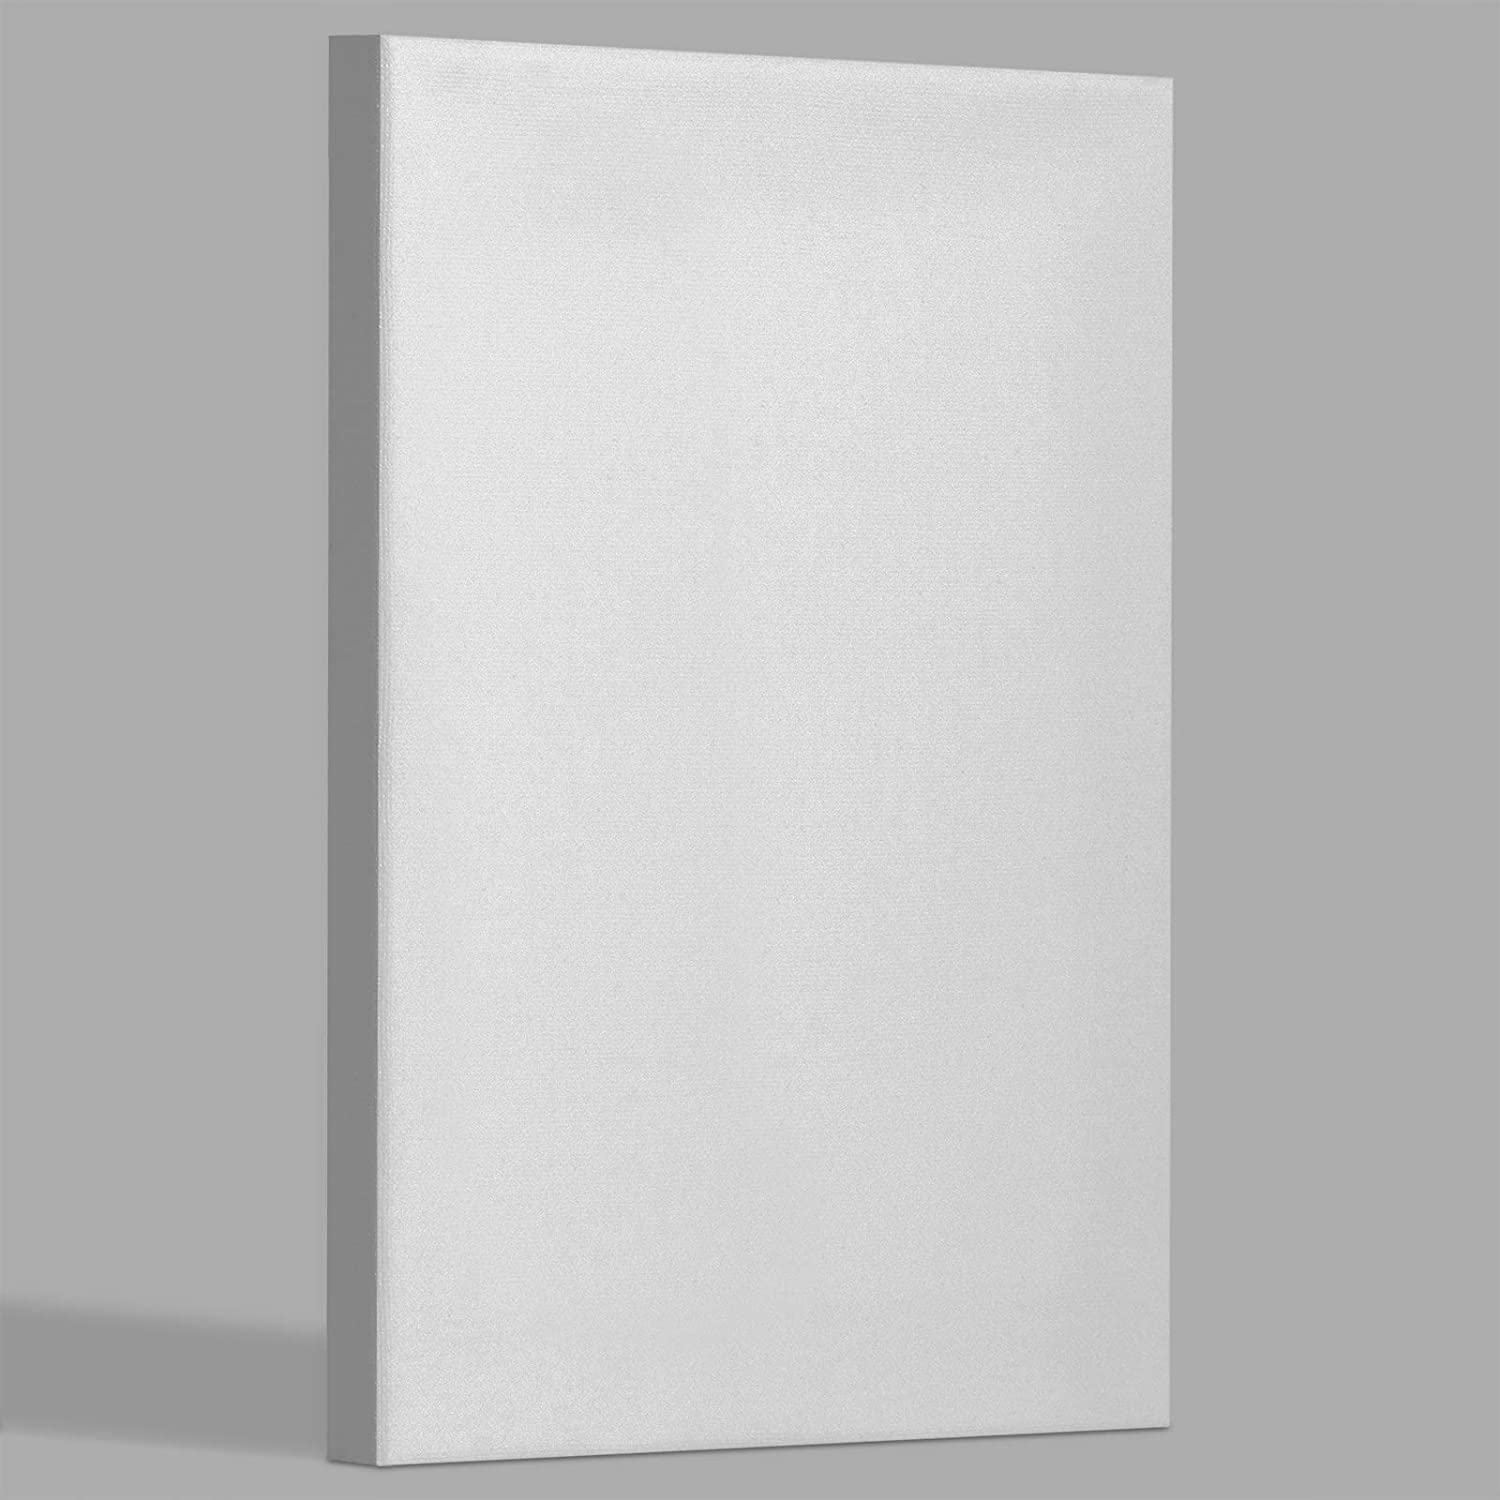 miniature 8 - Americanflat Stretched Canvas in White 100% Cotton Wooden Frames & Acid Free